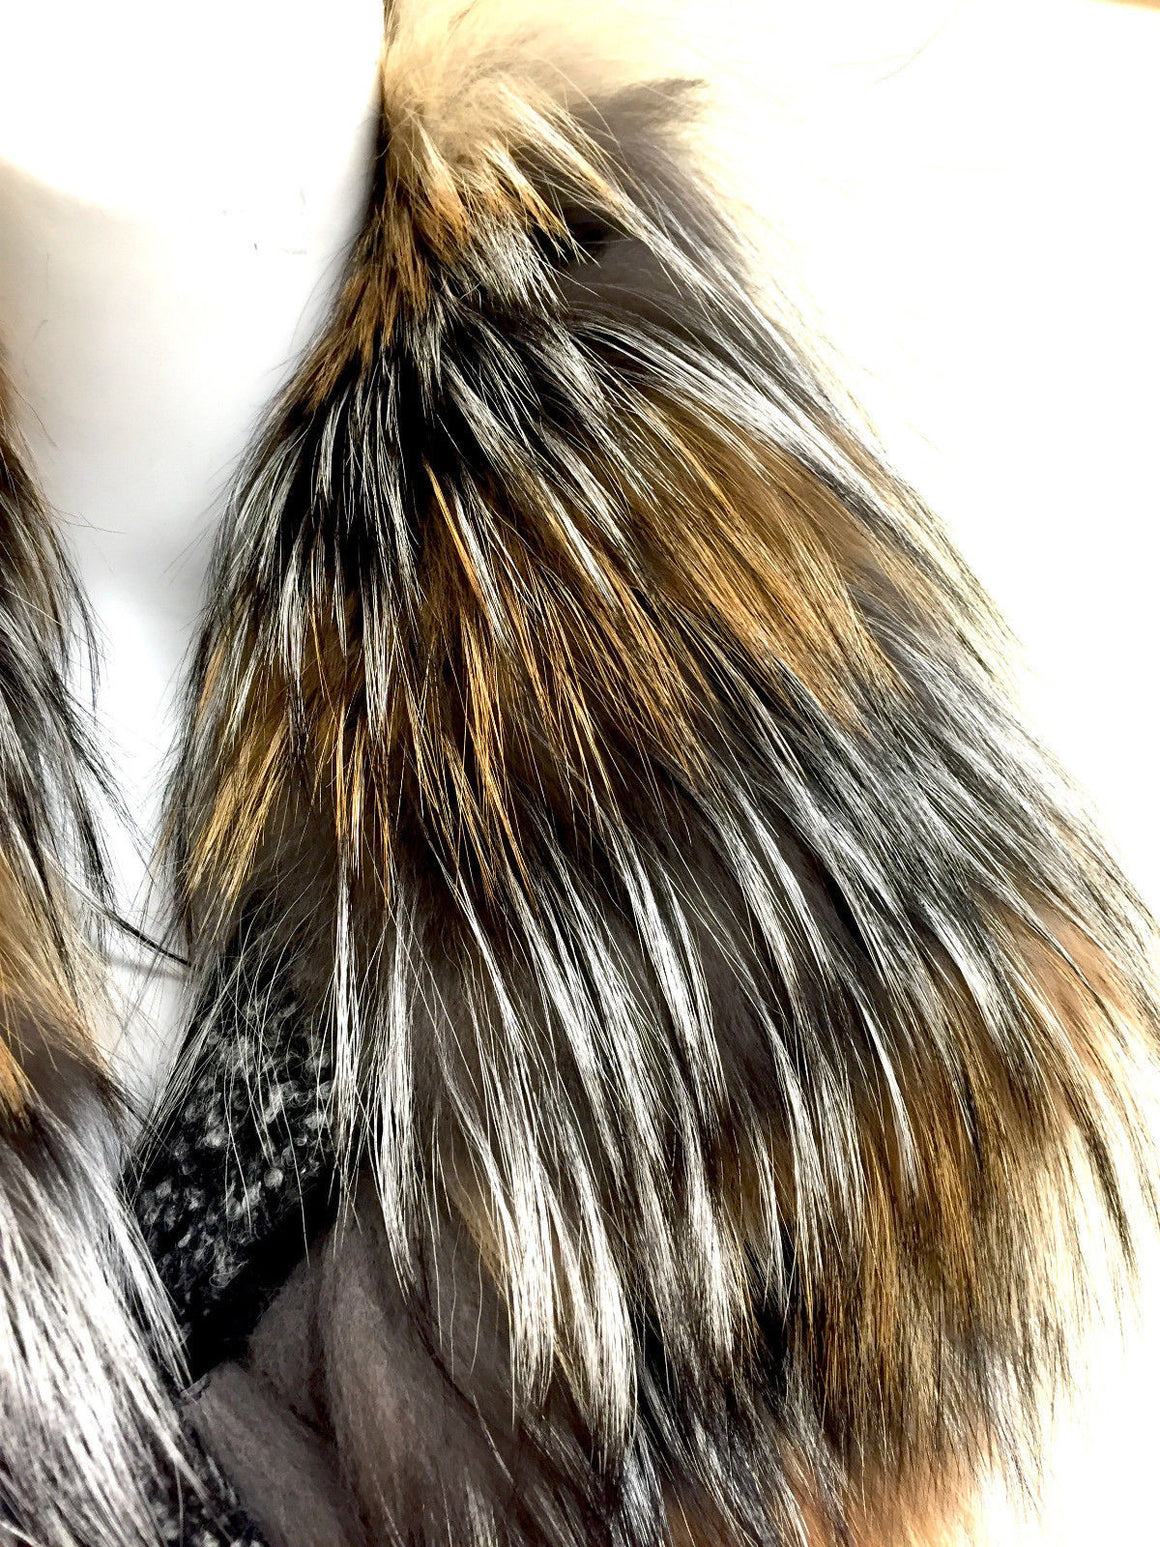 bisbiz.com ROBERTO CAVALLI New with Tags Silver & Arctic Fox Fur B&W Tweed Back Braided Leather Vest Size: IT40 / US4/6 - Bis Luxury Resale